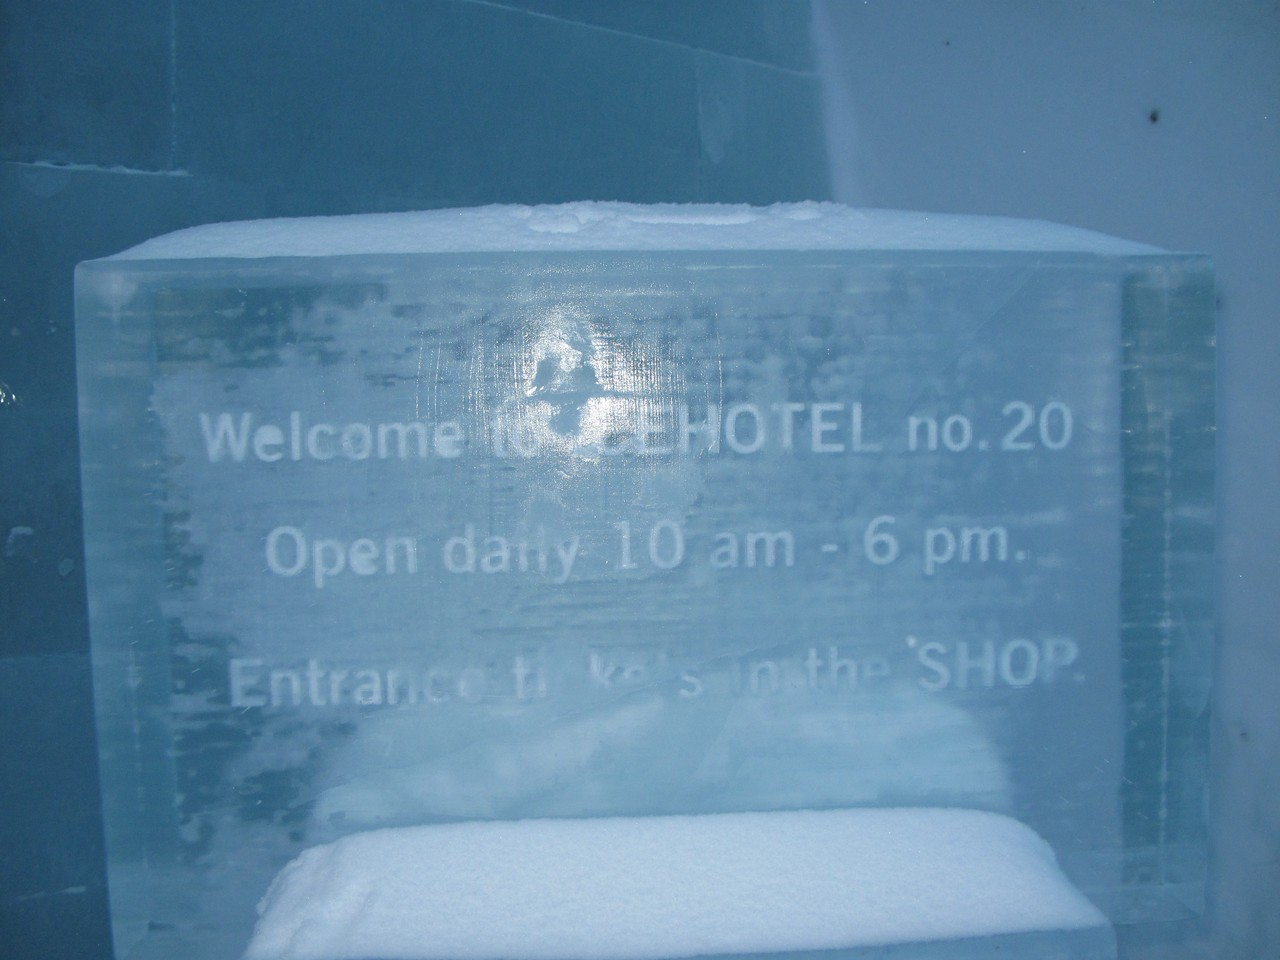 2010 is the 20th anniversary of the Icehotel.  The beginning of the hotel actually starts the previous Spring, when crystal clear iceblocks are harvested from the Torne river nearby and put into storage for the summer.